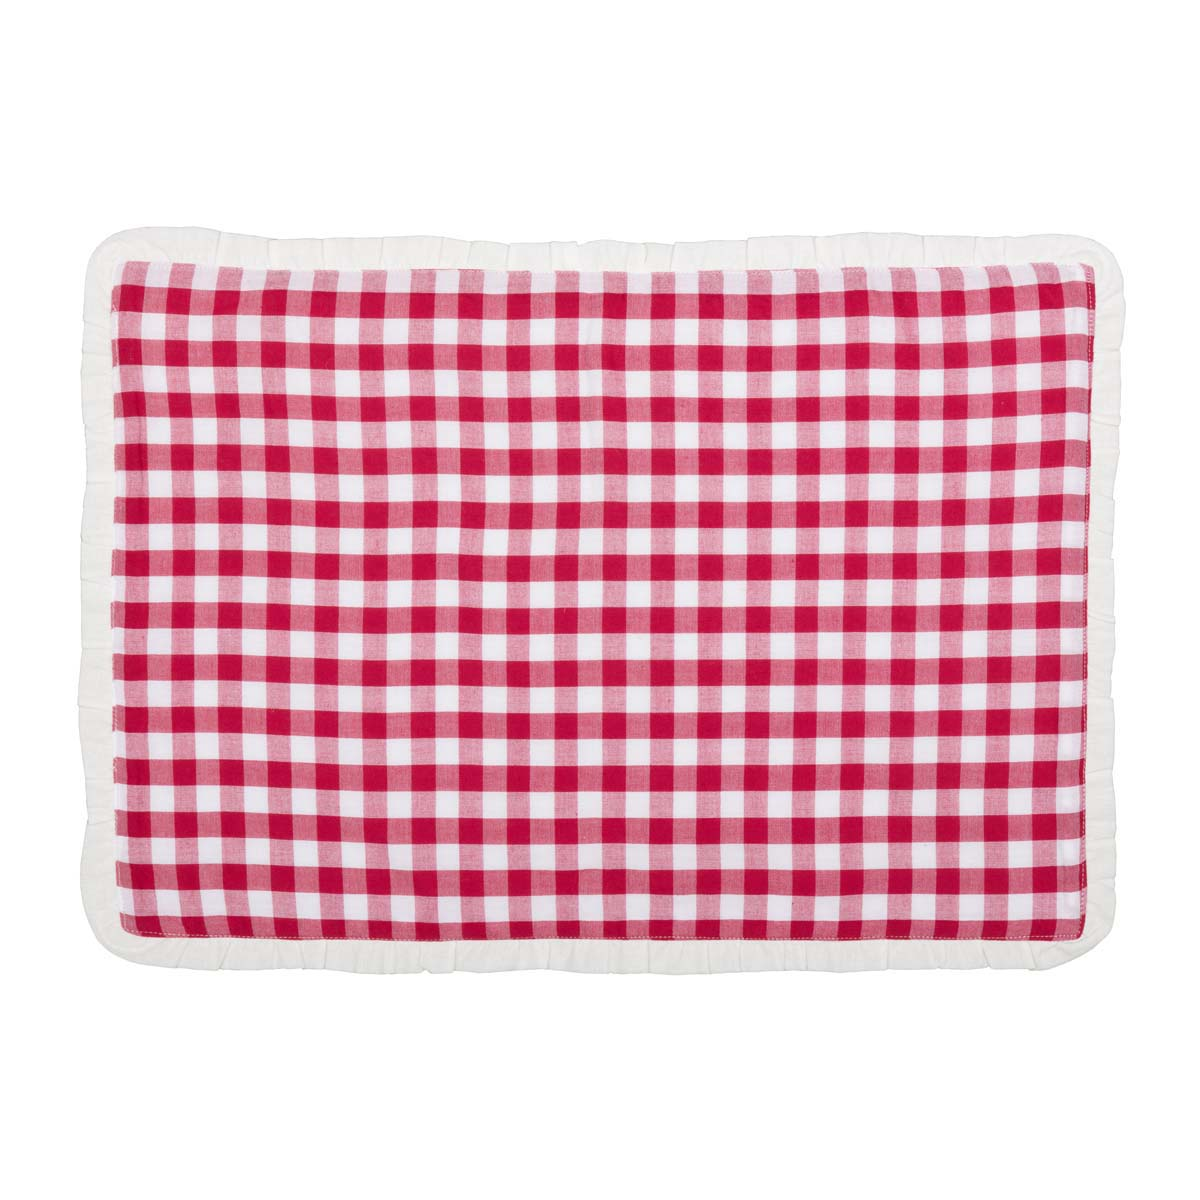 Emmie Red Placemat Set of 6 12x18 - Woodrol